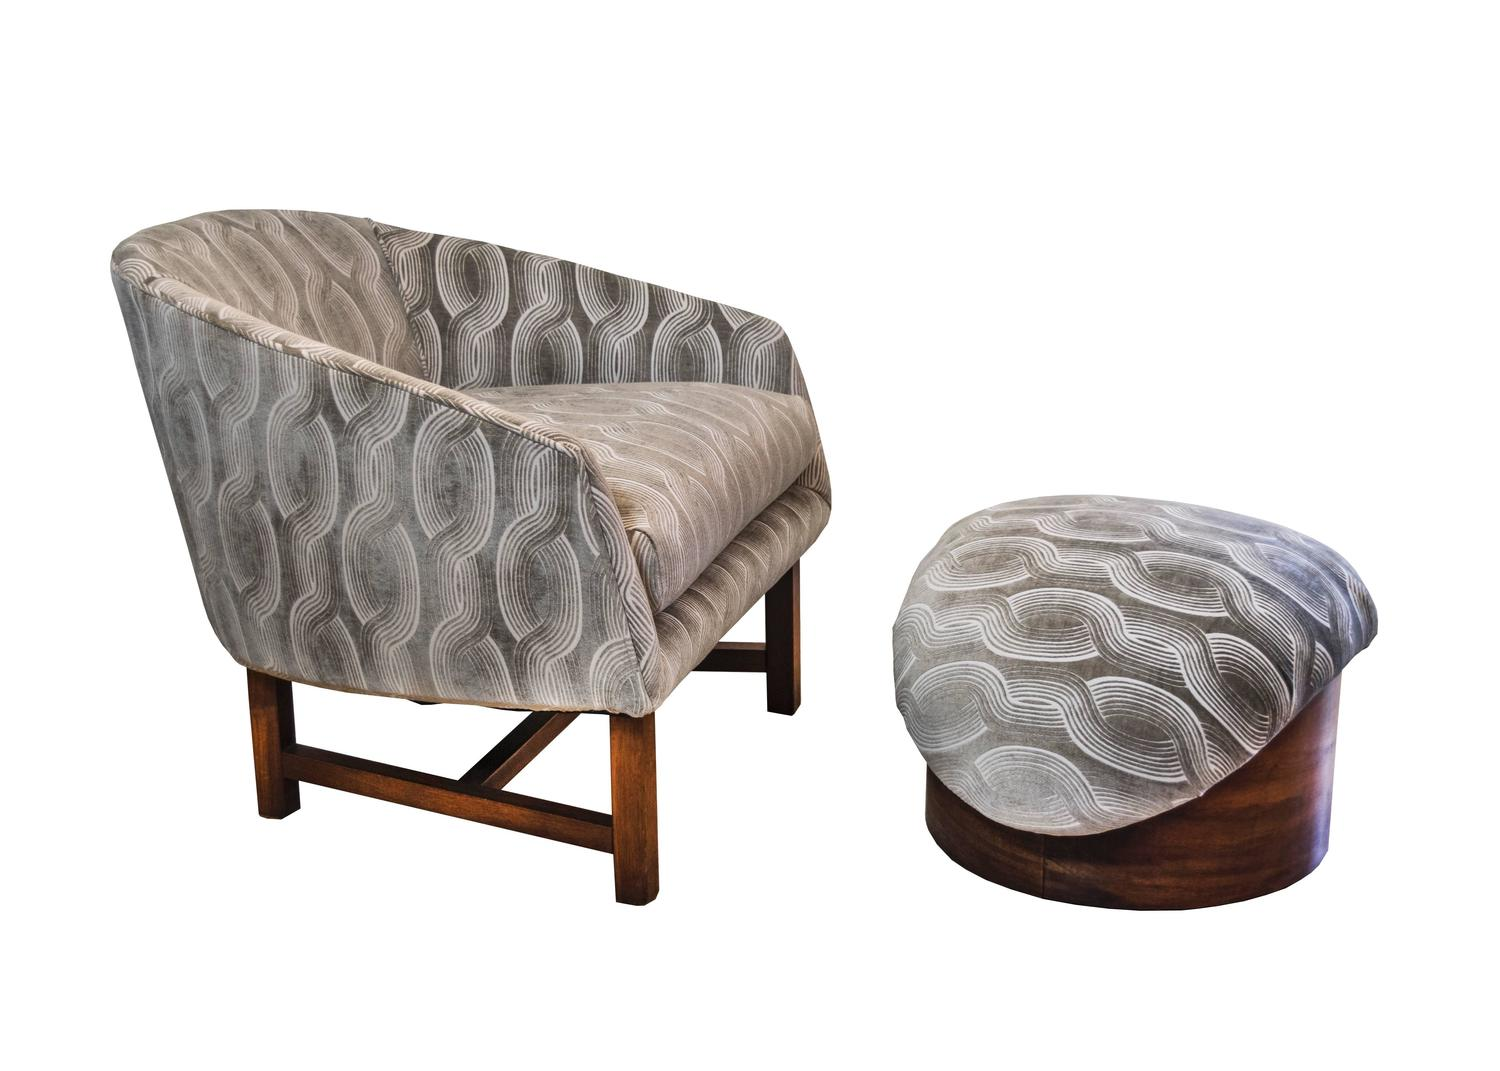 mid century modern reading chair and ottoman for sale at 1stdibs. Black Bedroom Furniture Sets. Home Design Ideas